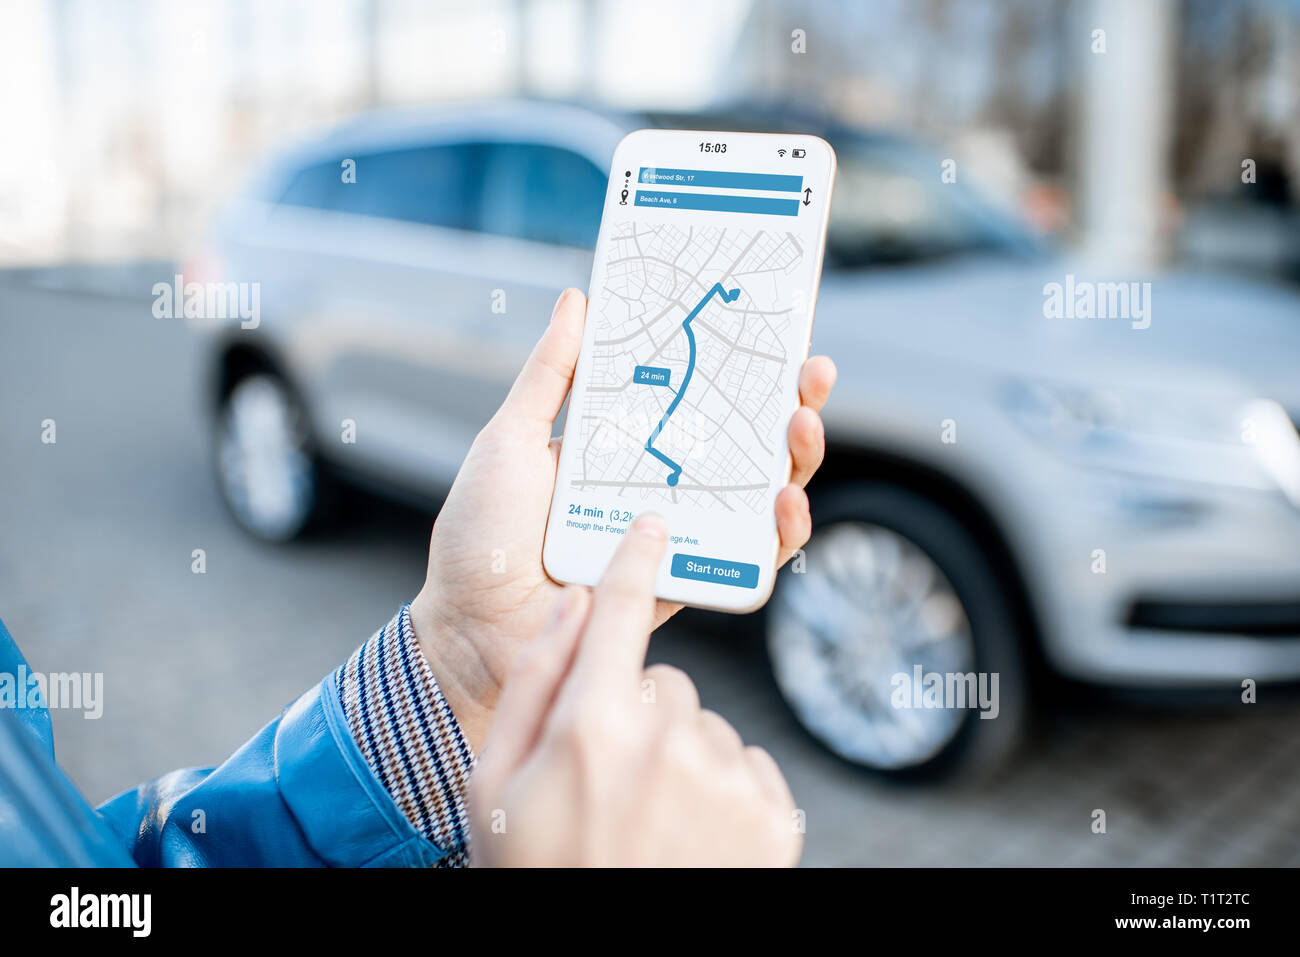 Woman using smart phone with navigation app, close-up view with modern car on the background - Stock Image